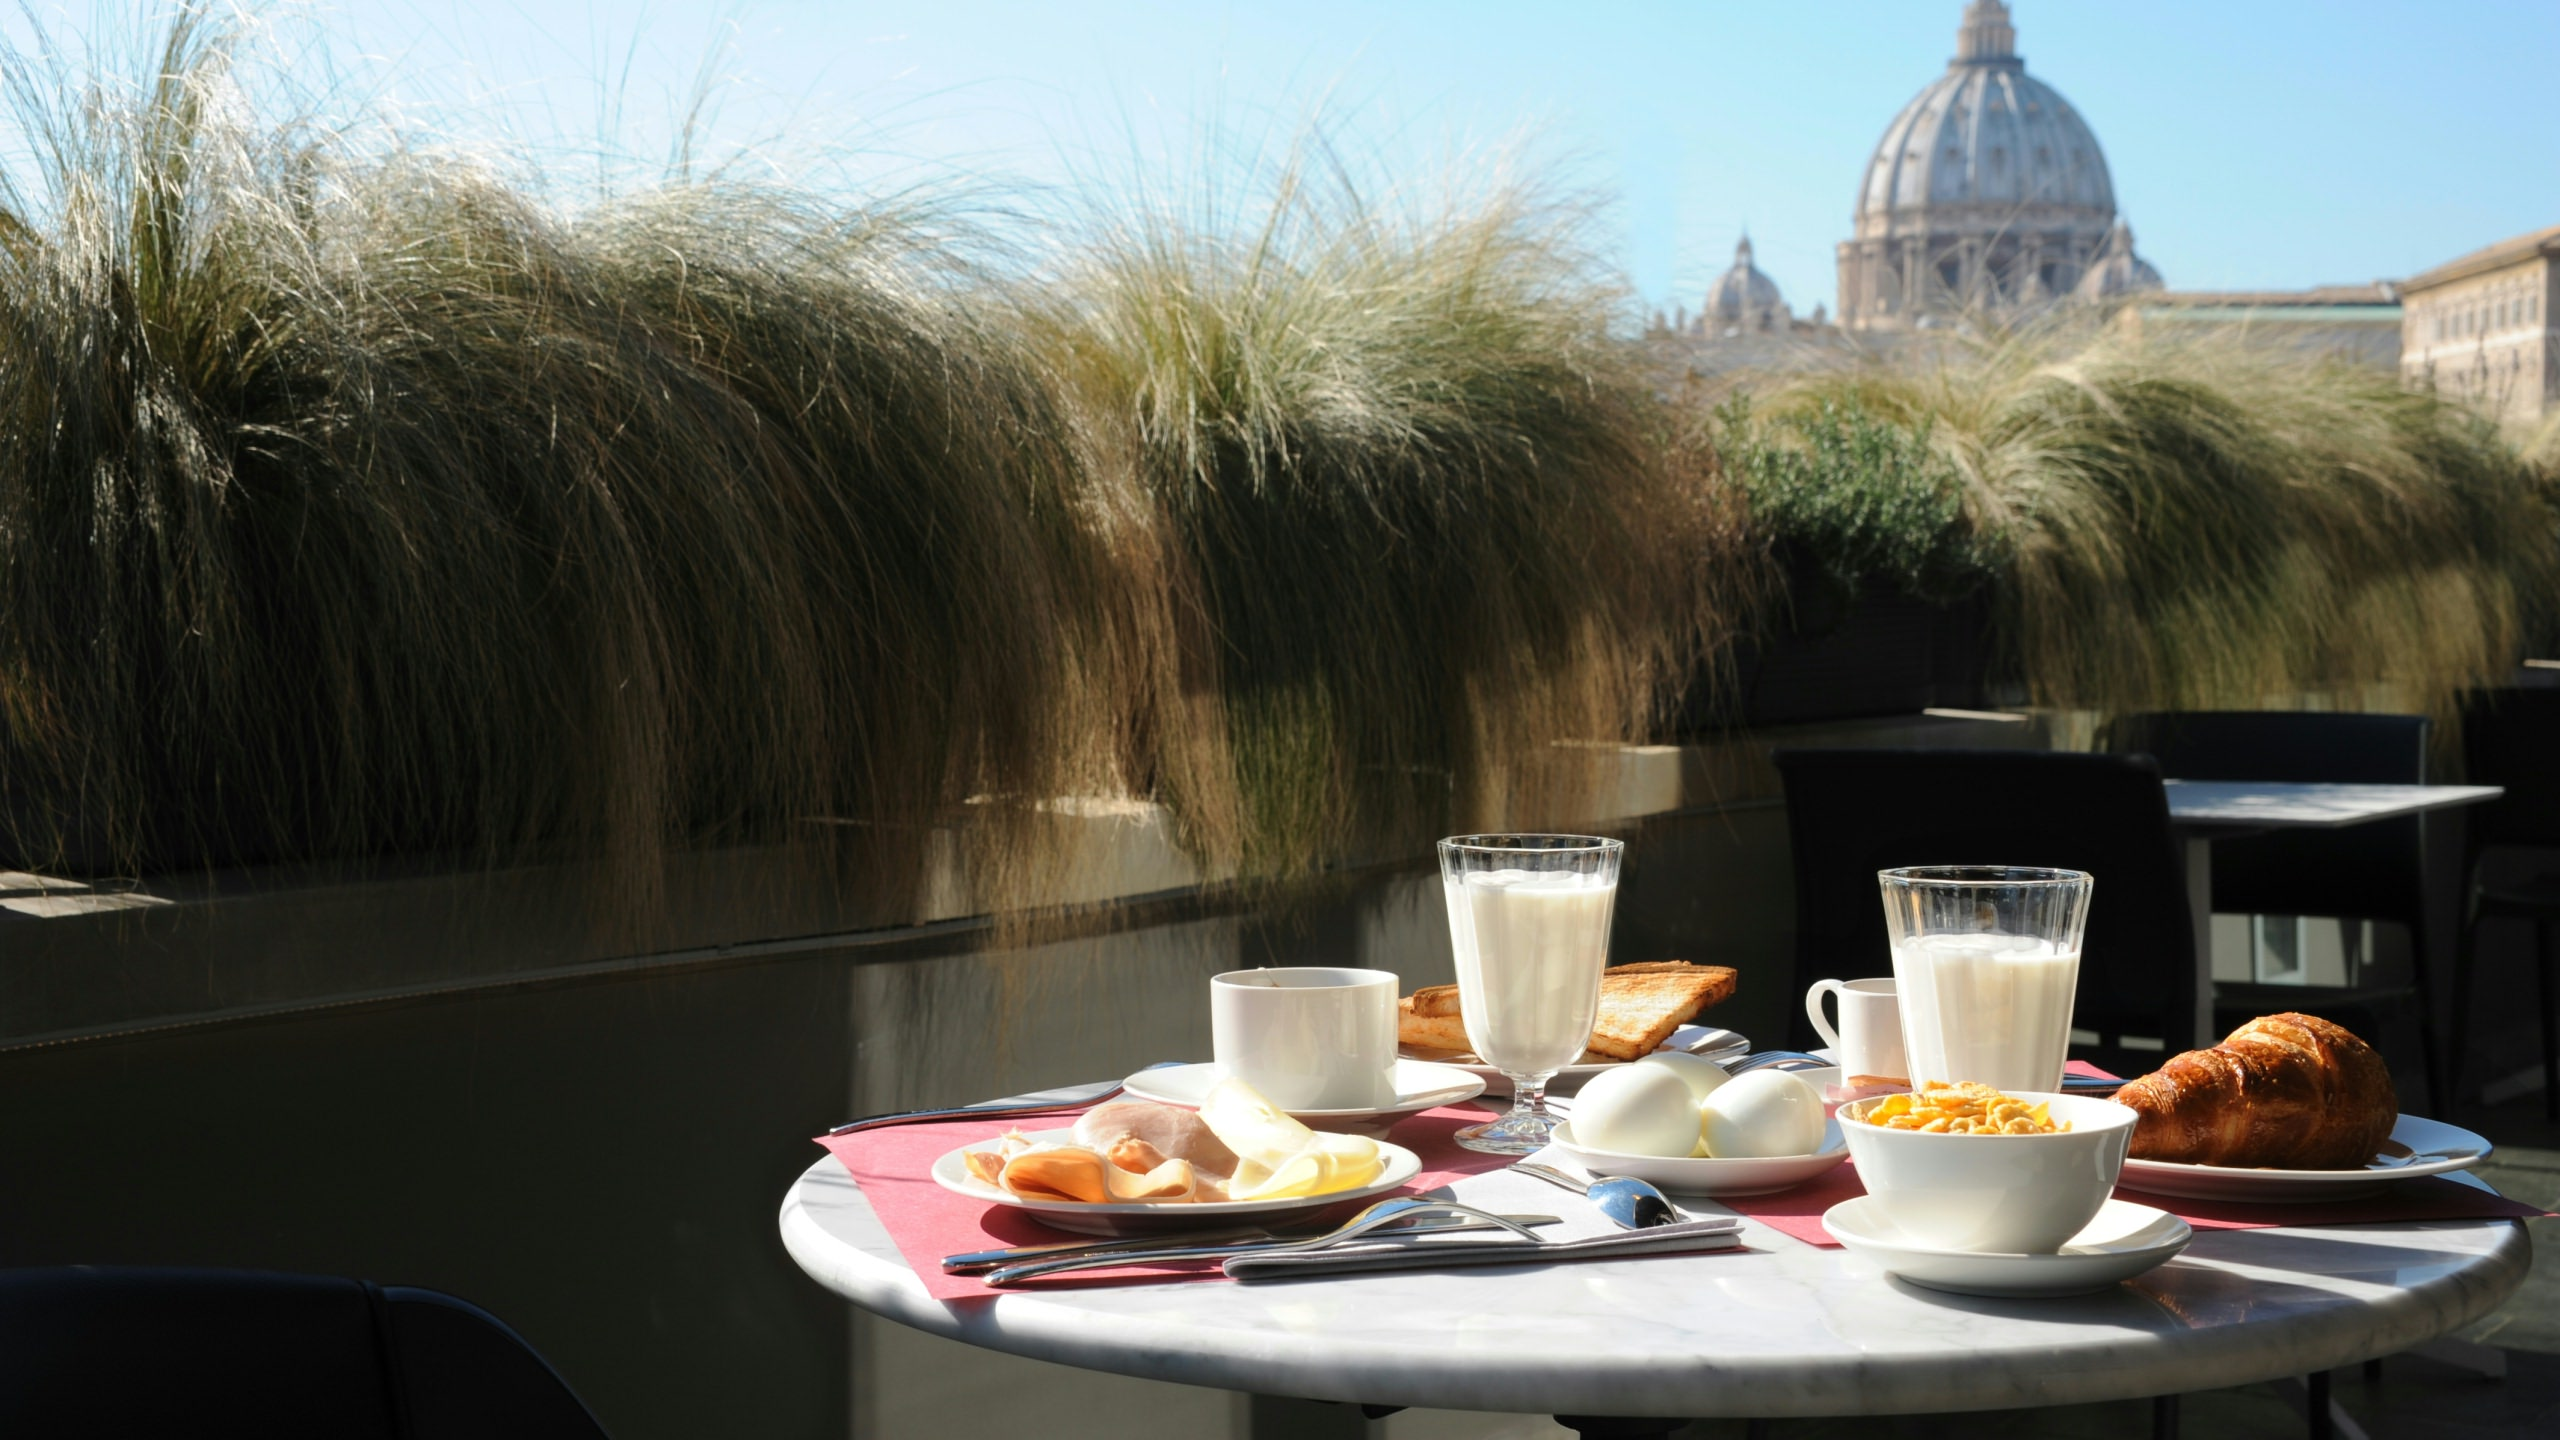 residence-trianon-rome-breakfast-in-terrace-2613